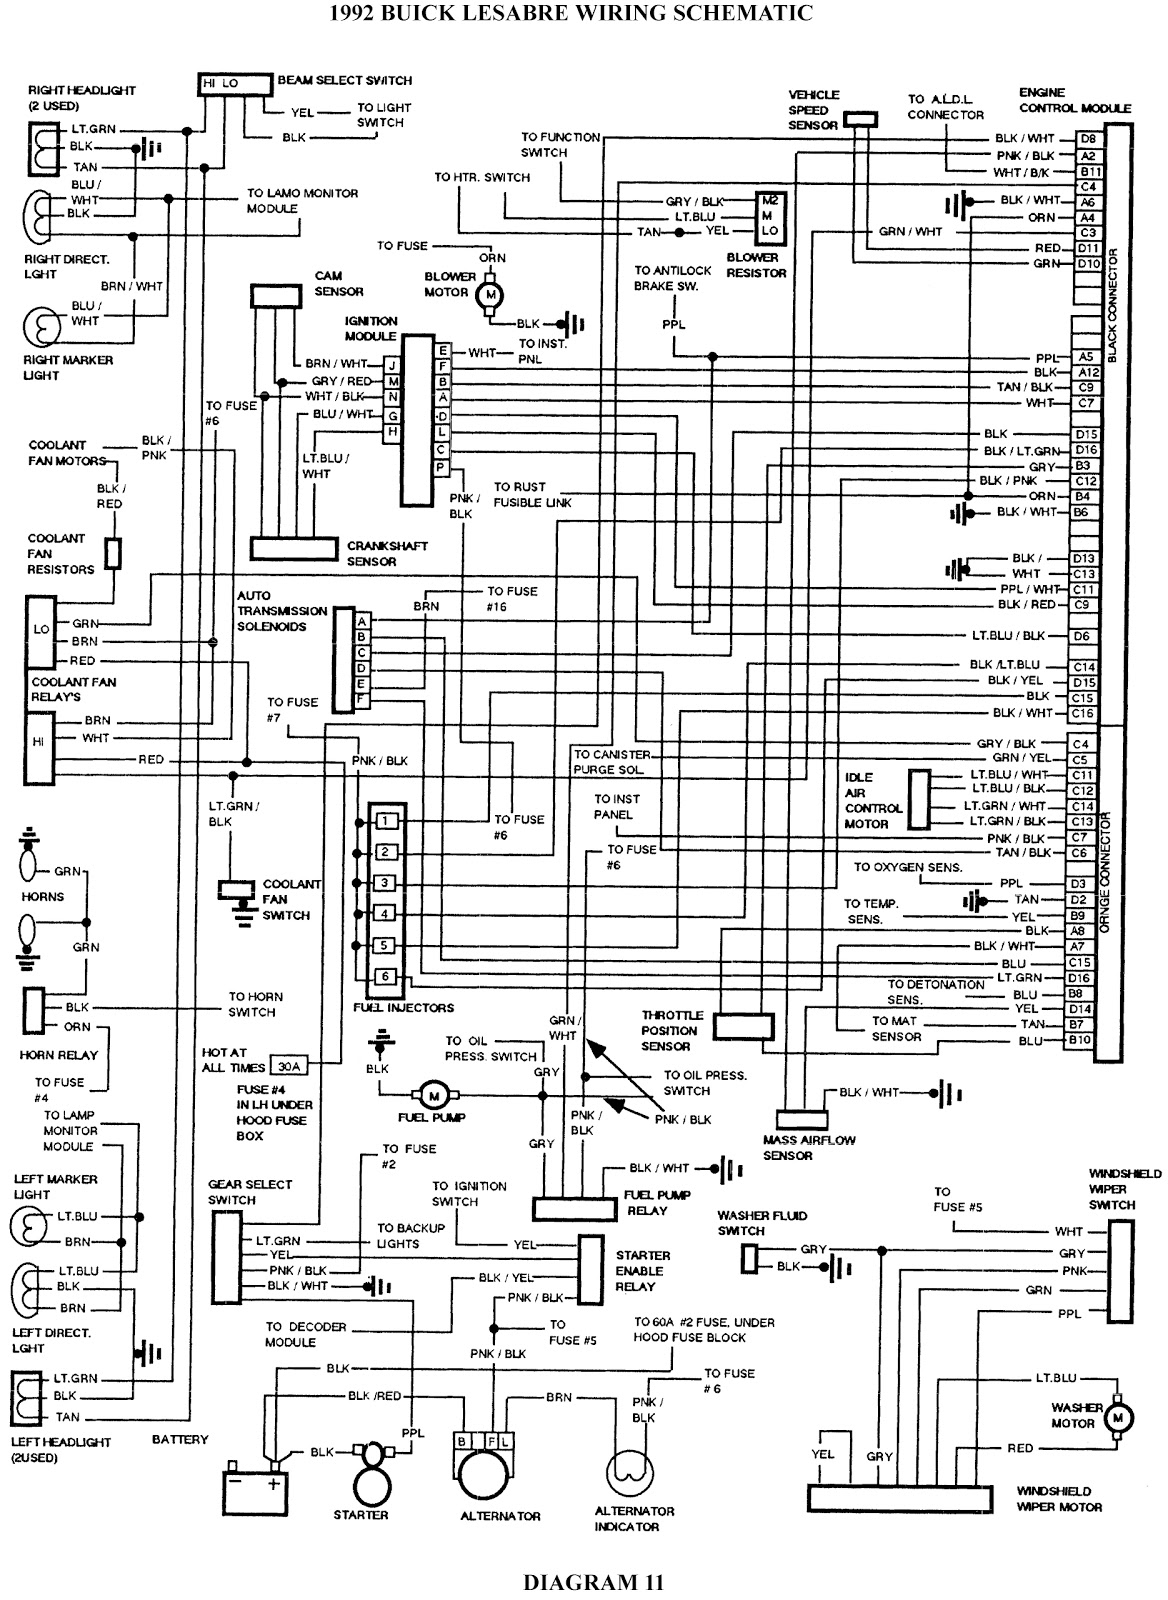 2000 buick wiring diagram schema diagram database 1994 buick lesabre ignition switch wiring diagram [ 1168 x 1600 Pixel ]